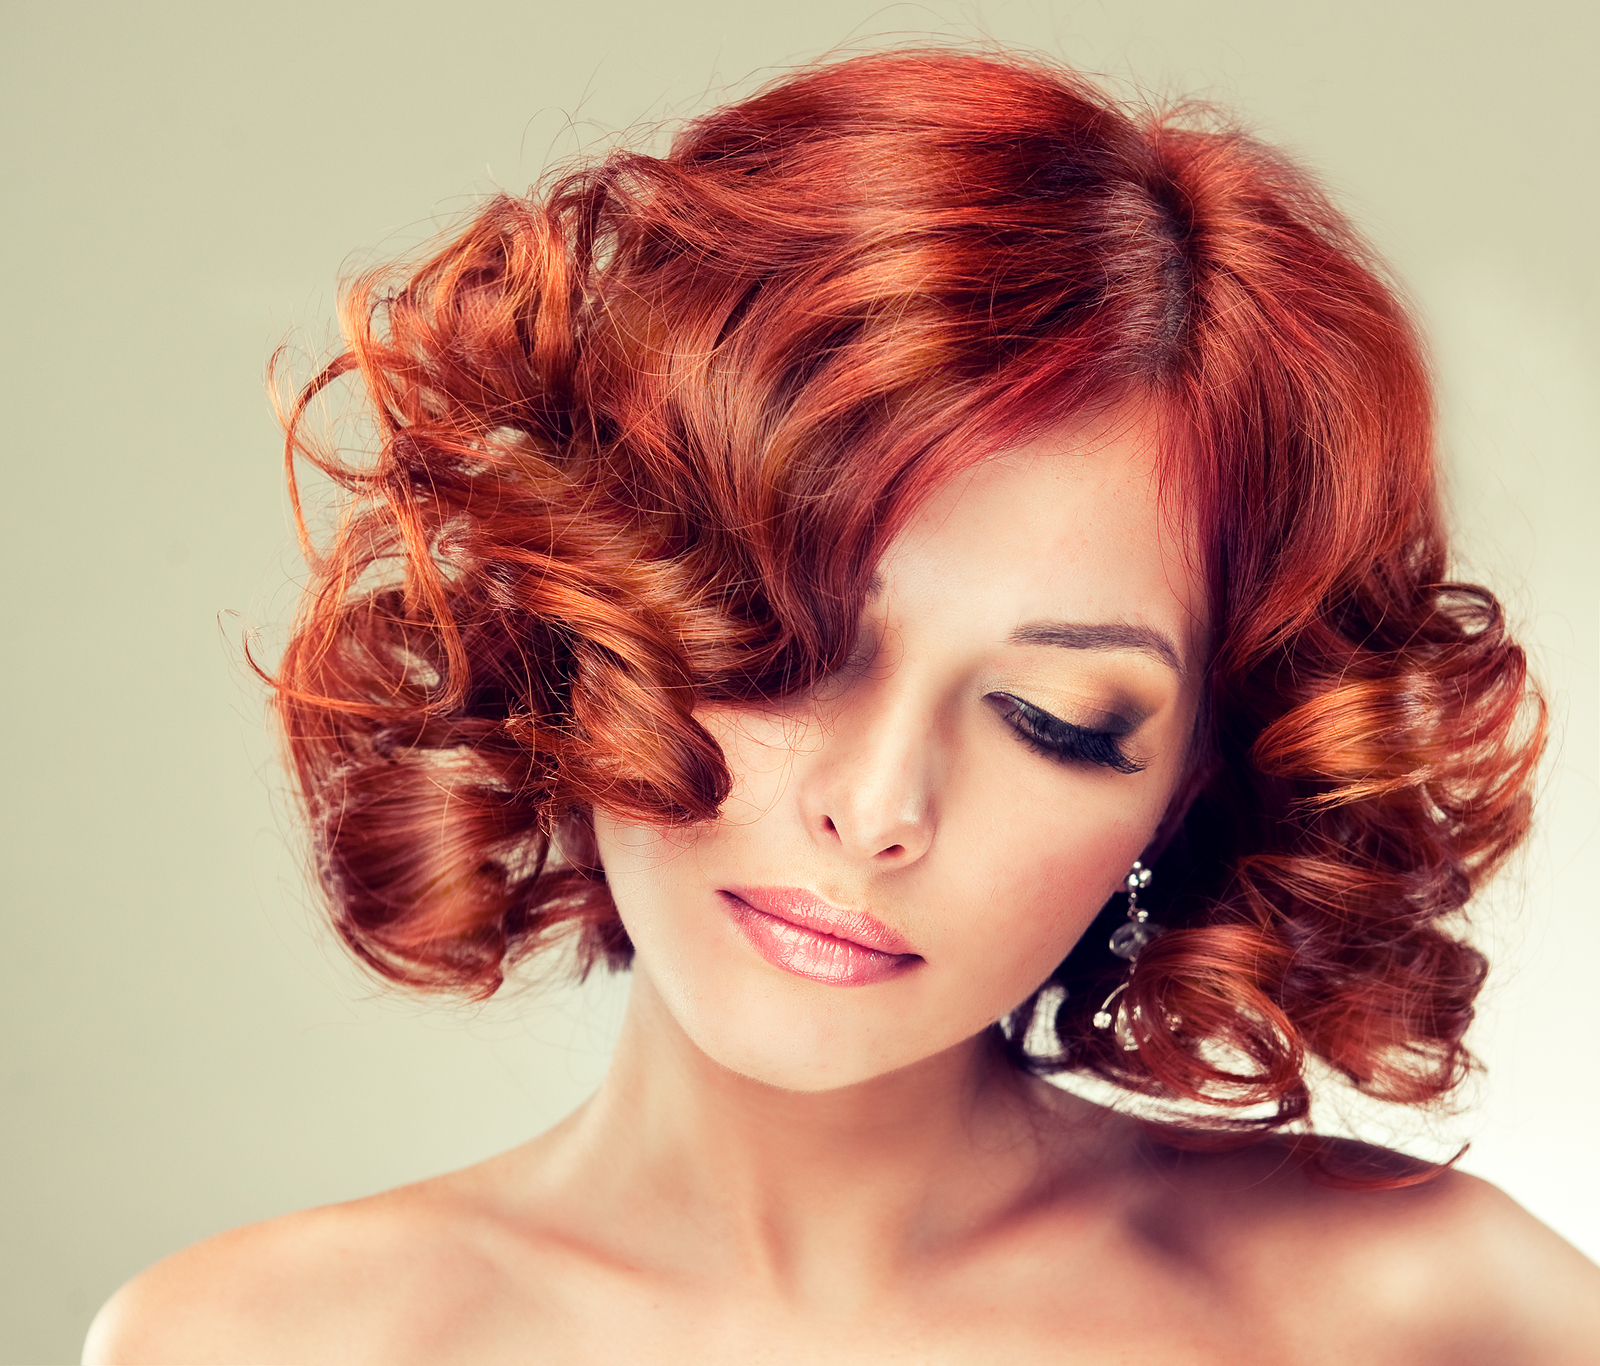 Wigs in Pitman NJ | New Jersey Wigs Specialists | Wig-a-Do